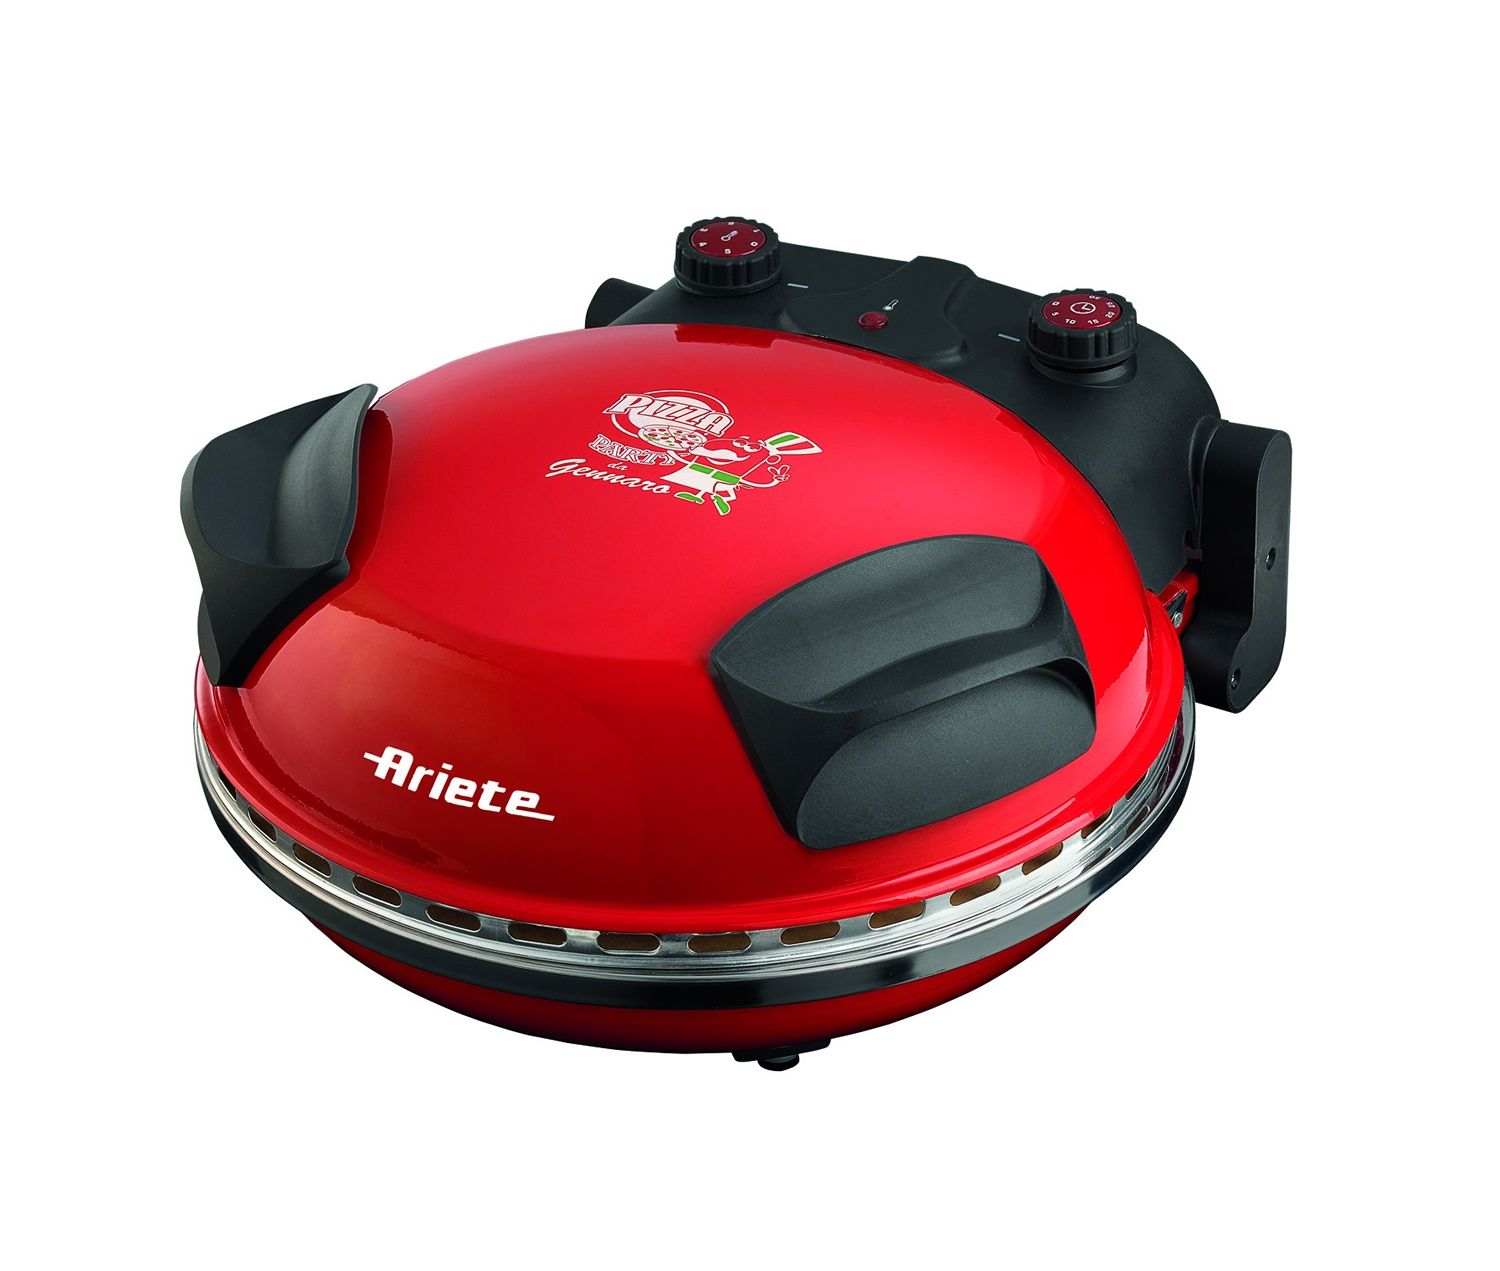 Мини-печь ARIETE 798 pizza party da gennaro